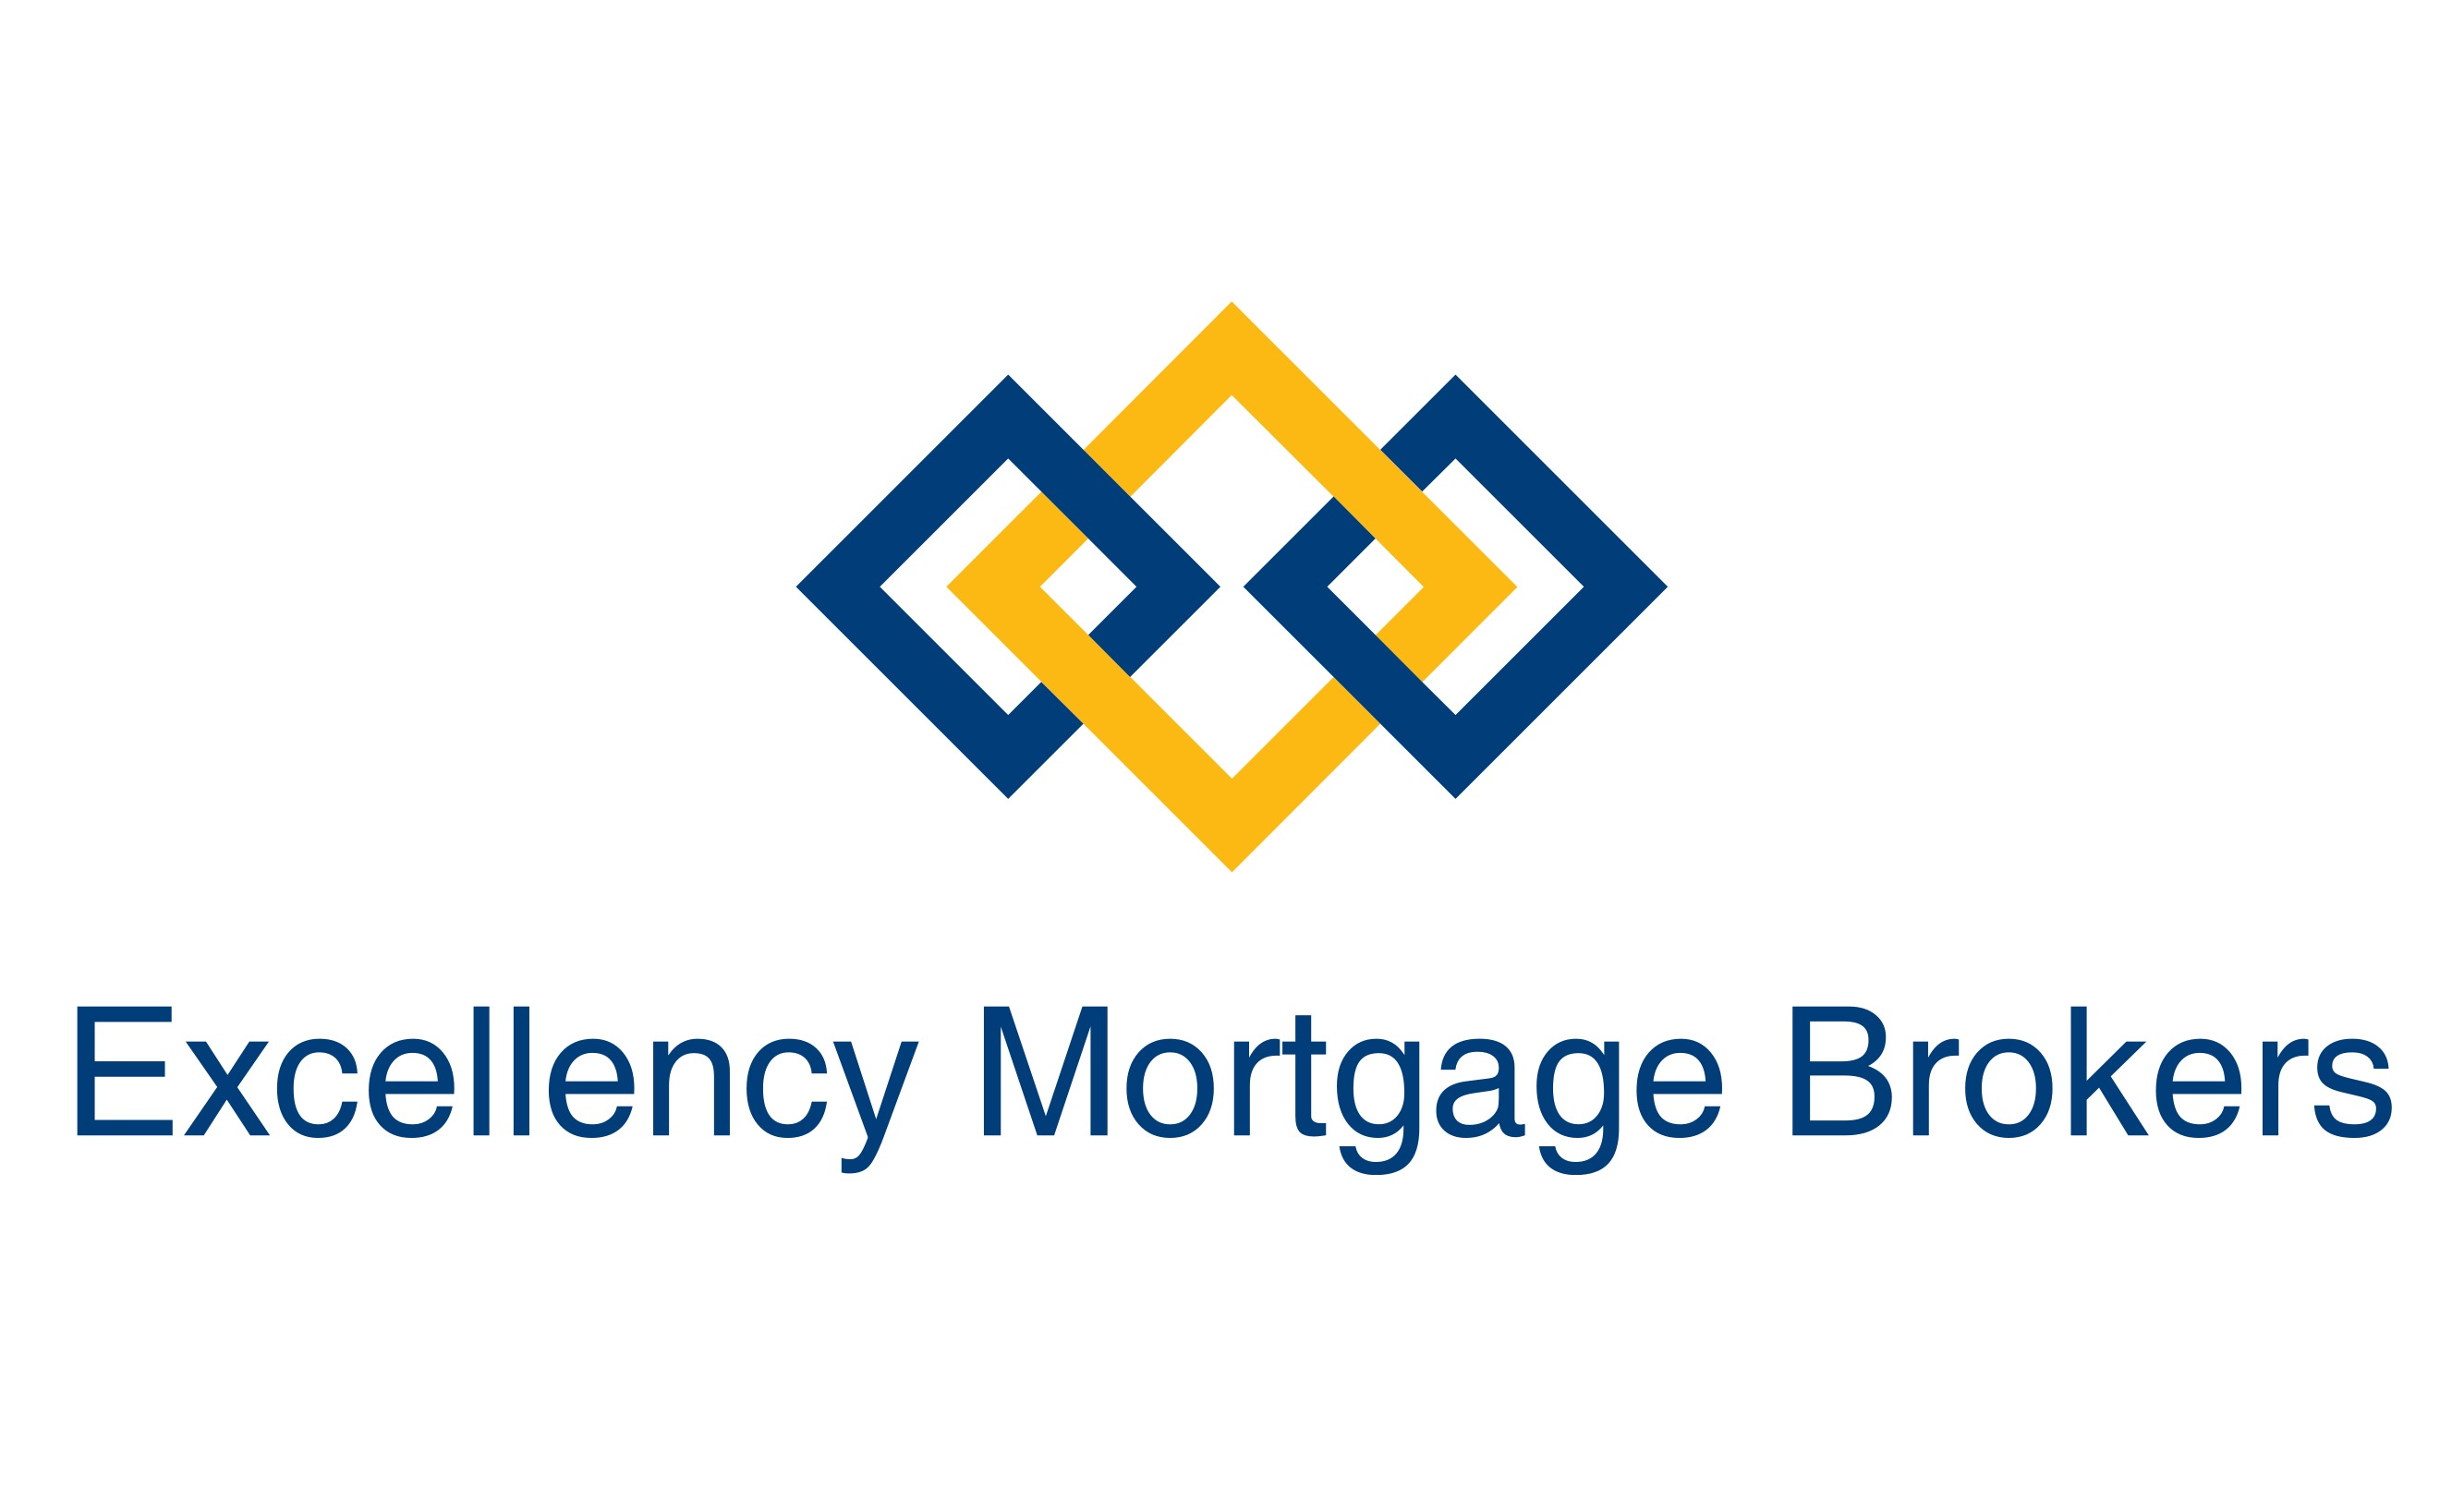 Excellency Mortgage Brokers